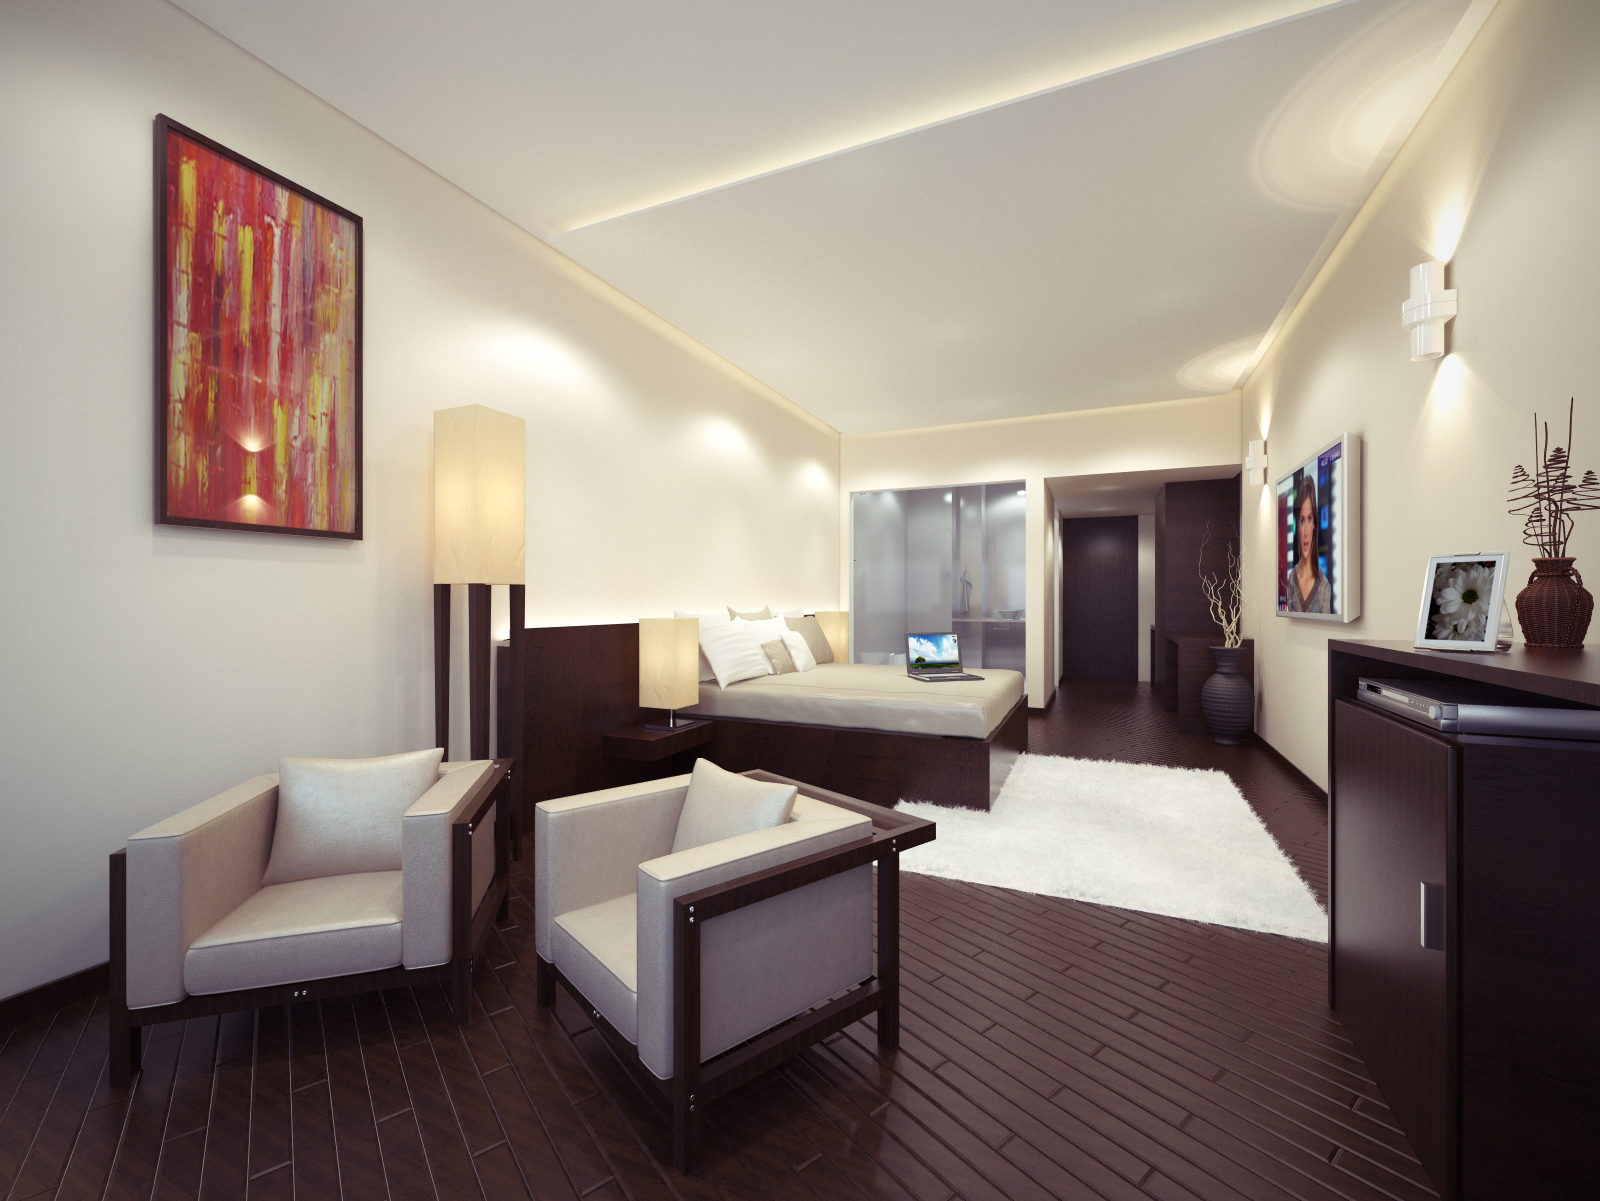 Shanth 3d hotel interior bedroom for Hotel room interior images